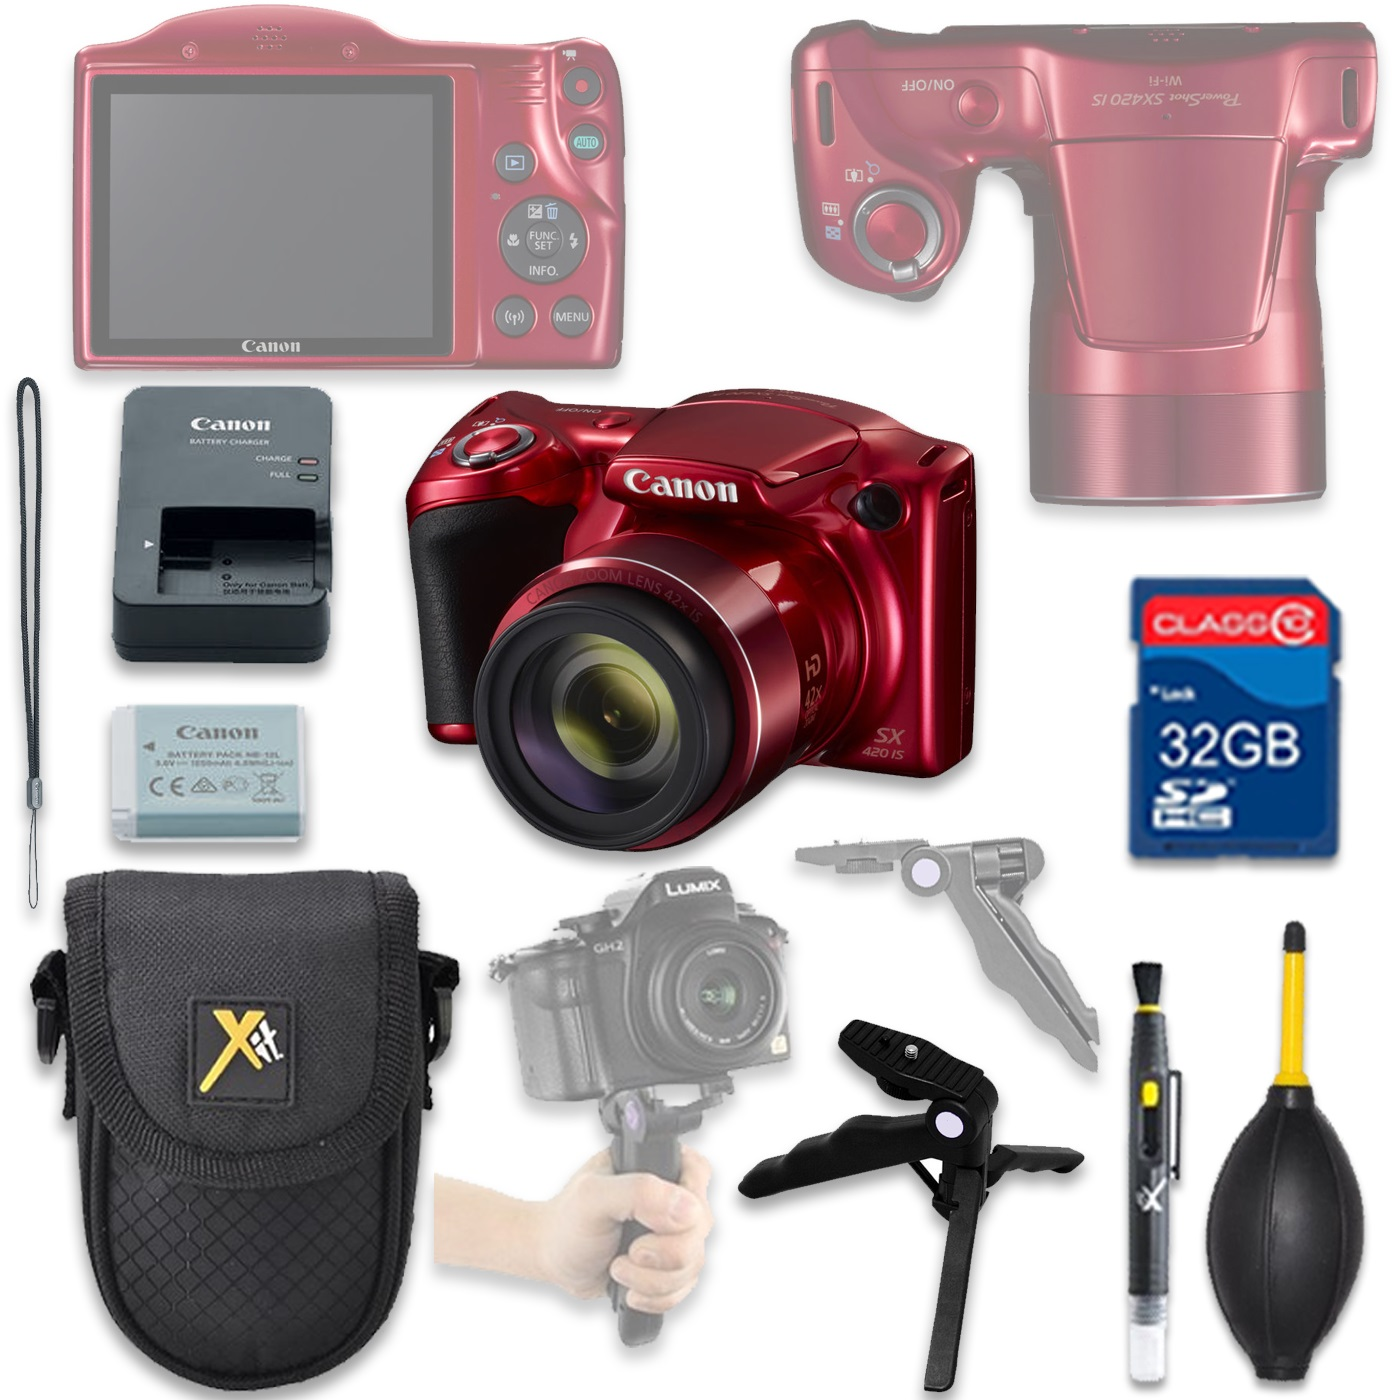 Canon PowerShot SX420 HS Digital Camera(red) with 32GB SD Memory Card + Accessory Bundle